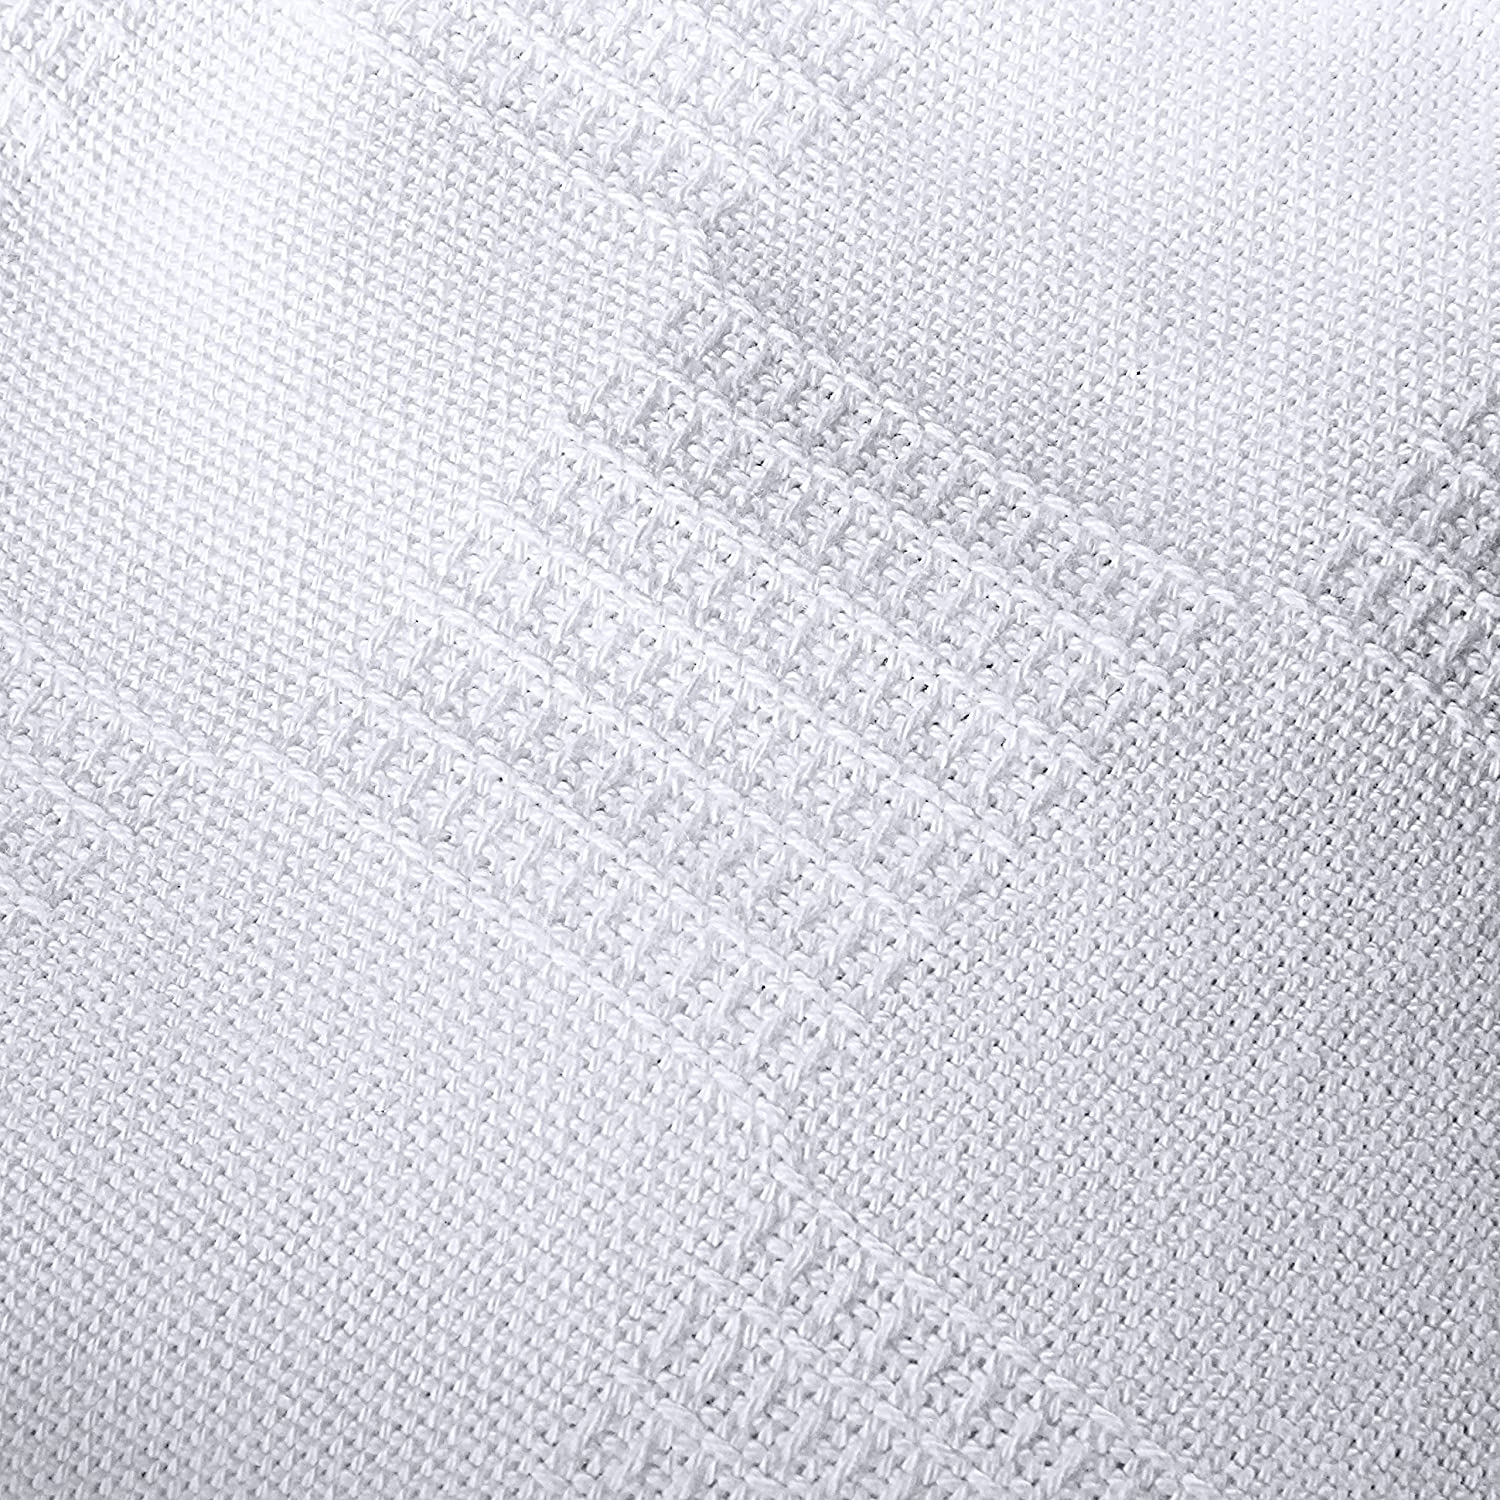 Breathable Cotton Throw Blanket and Quilt for Bed /& Couch//Sofa Utopia Bedding 100/% Premium Woven Summer Cotton Blanket Twin, White